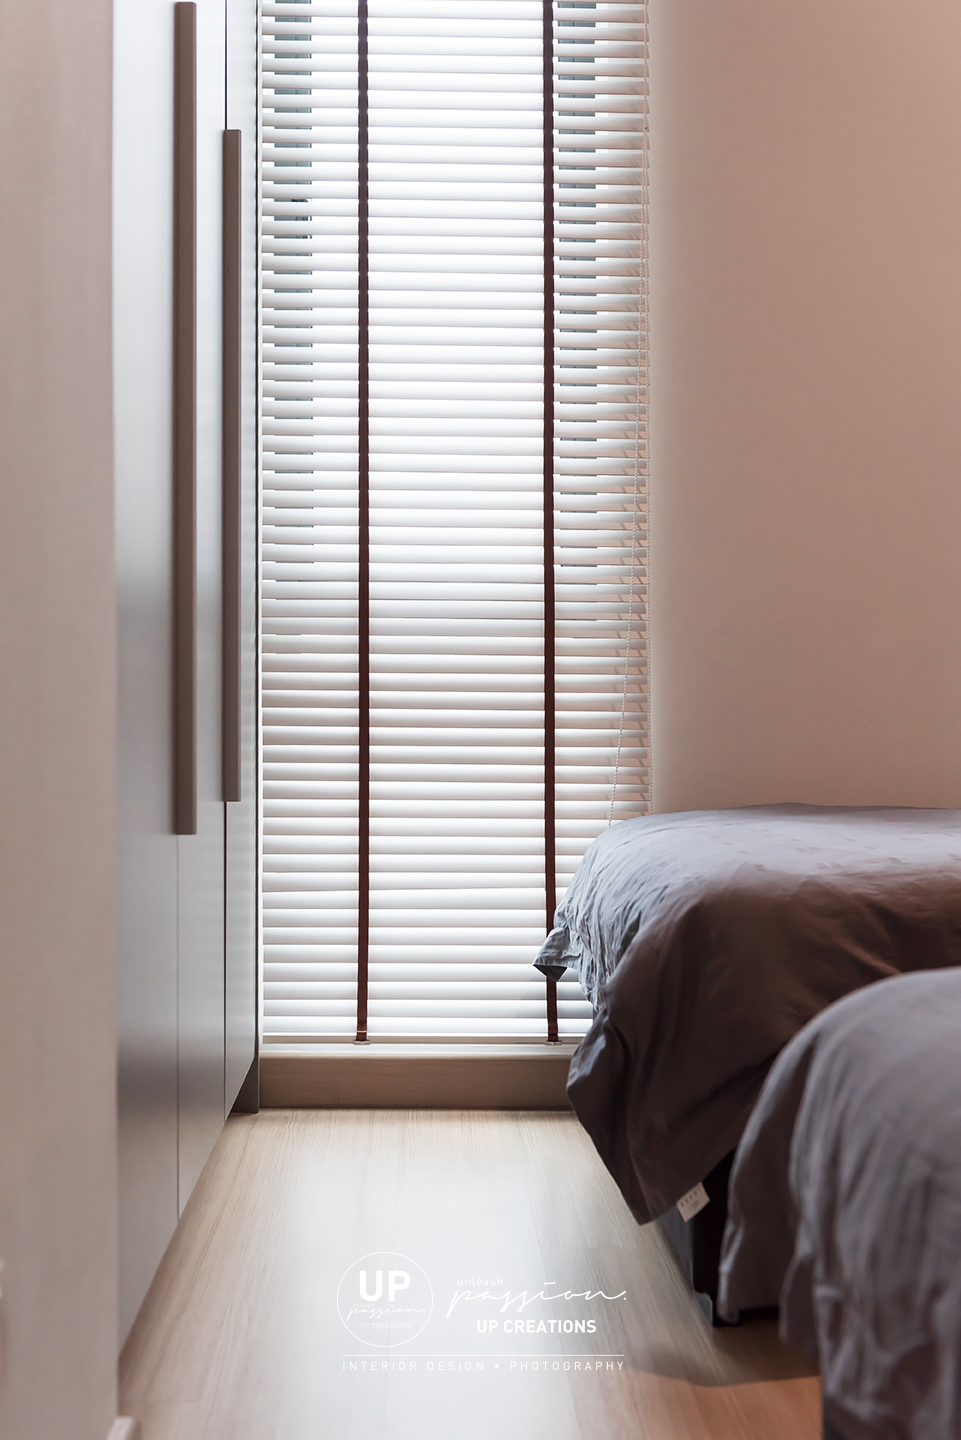 trinity aquata condo with venetian blind in white color and black color string